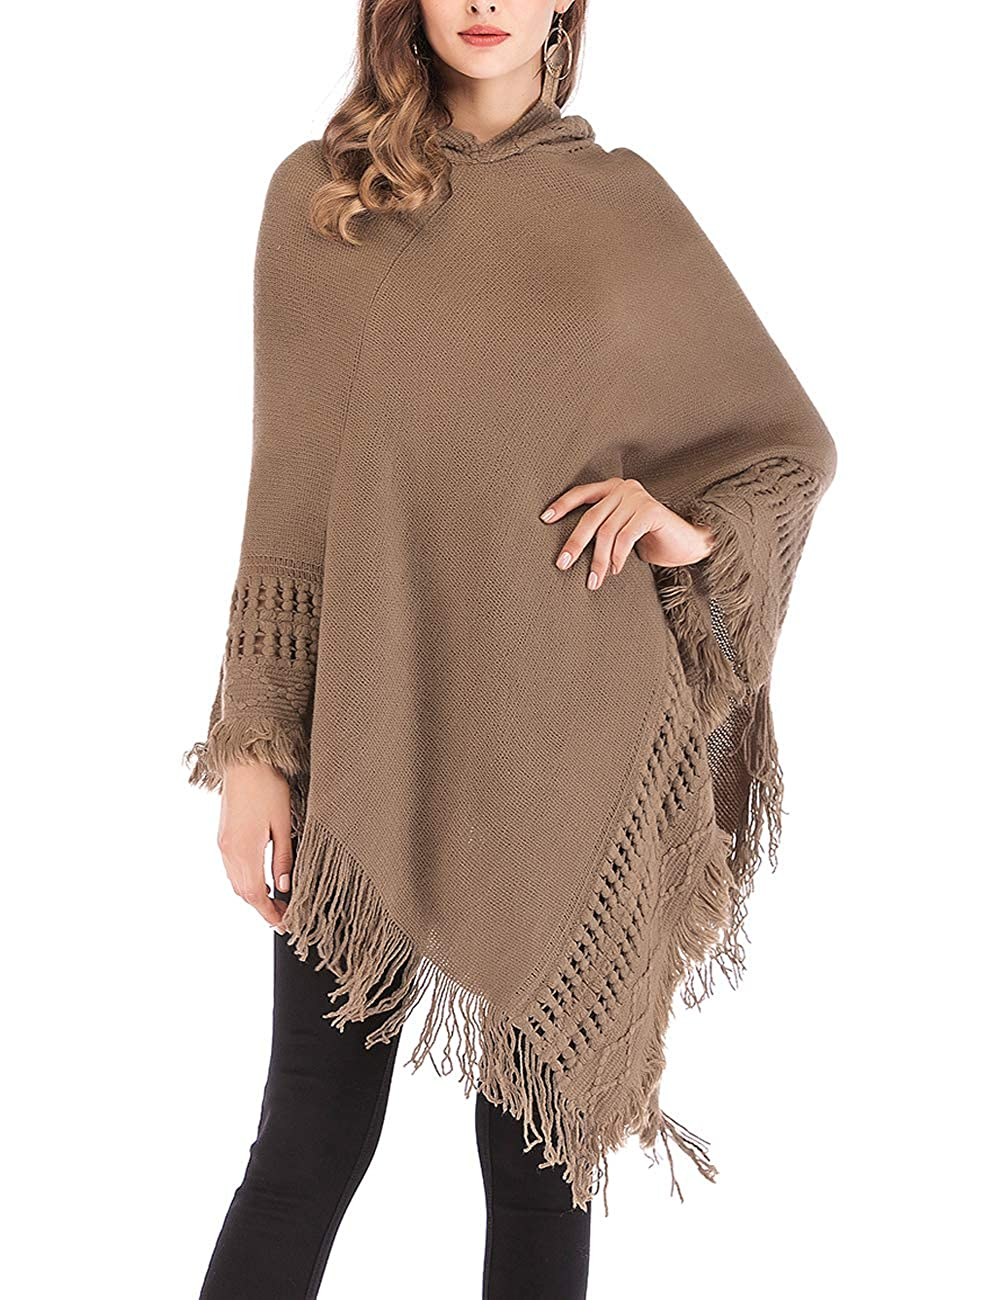 DODOING Women Hooded Cape Sweater Pullover Fringed Hem Crochet Knitting Patterns Poncho Cloak E43002033-CN-LXW001